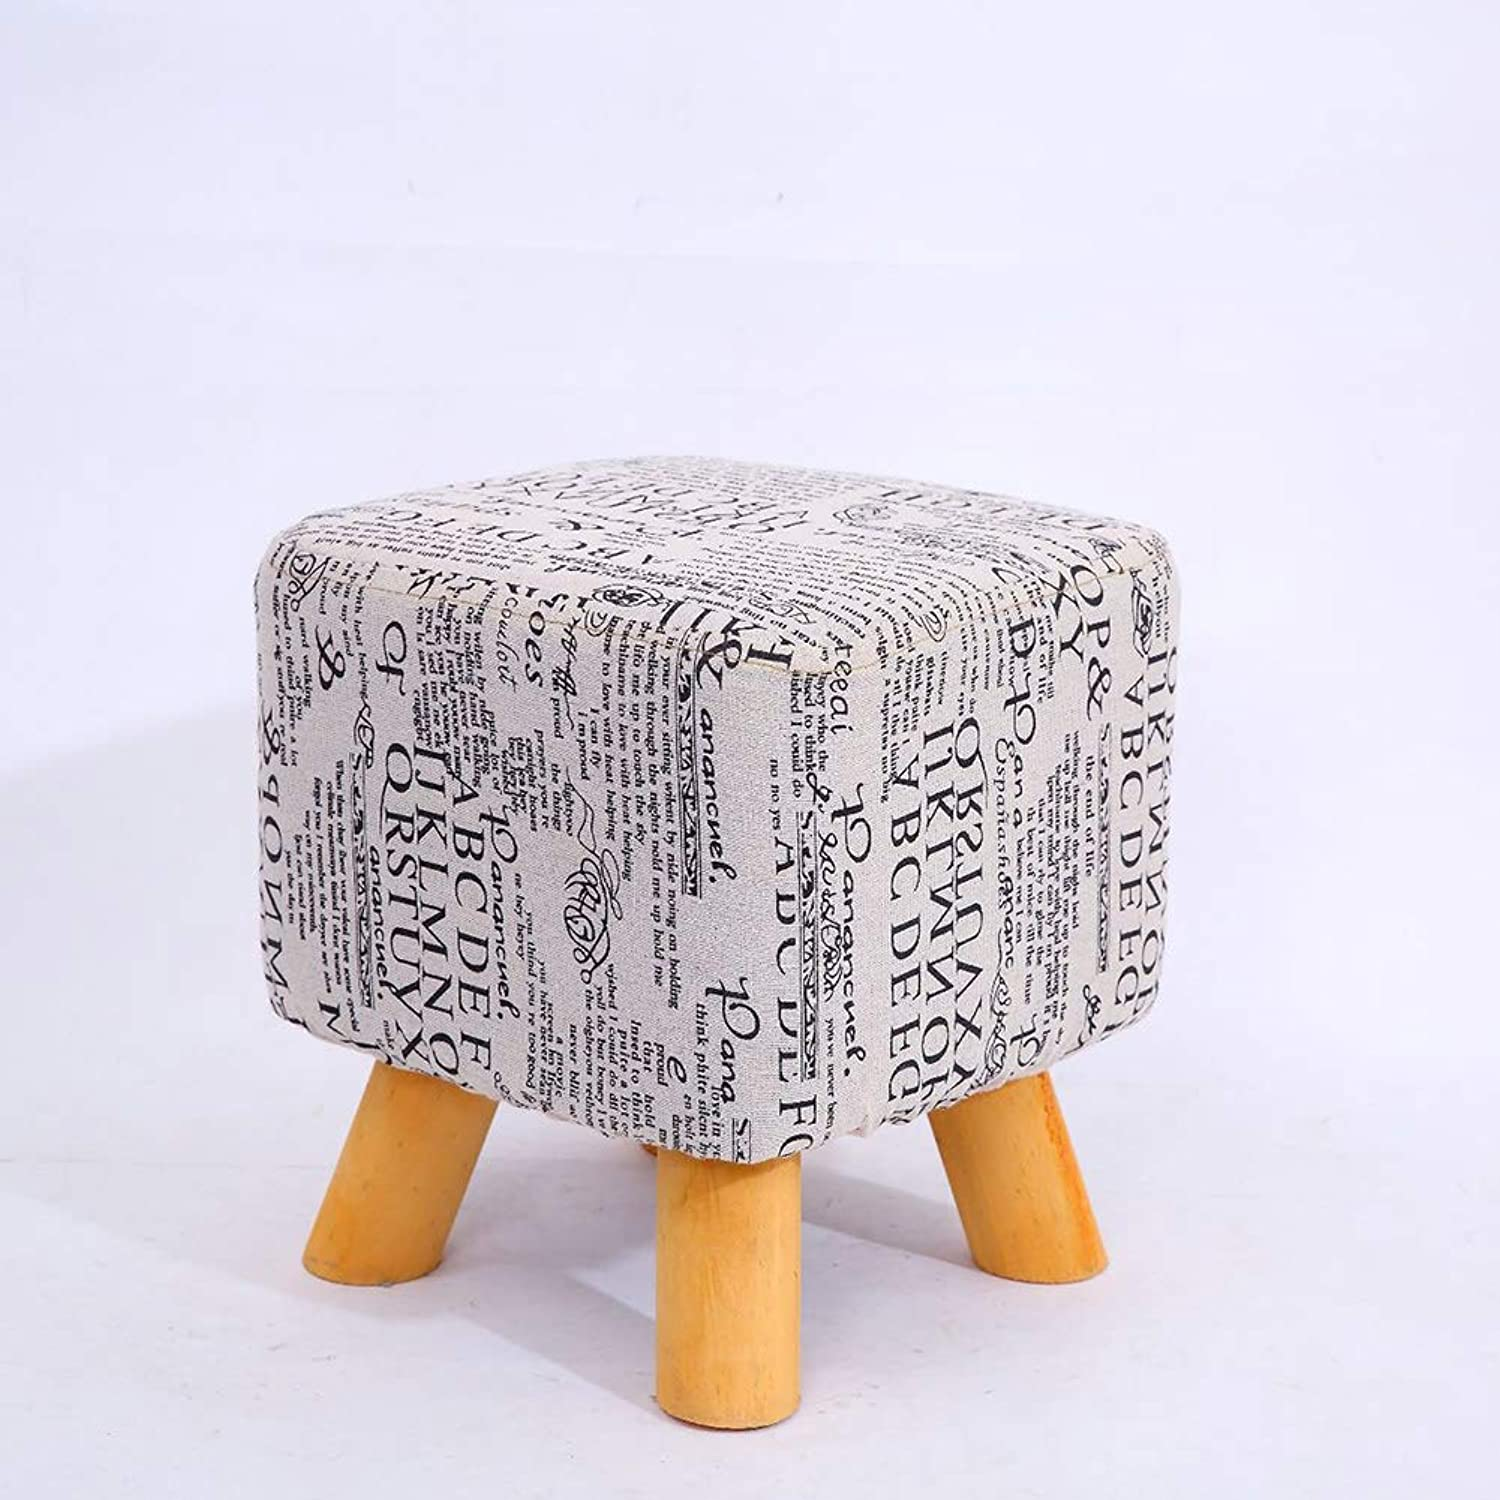 Small Stools, Solid Wood Home Fashion, shoes Benches, Square Stools, Adult Sofa Stools, Low Stools, Creative Benches